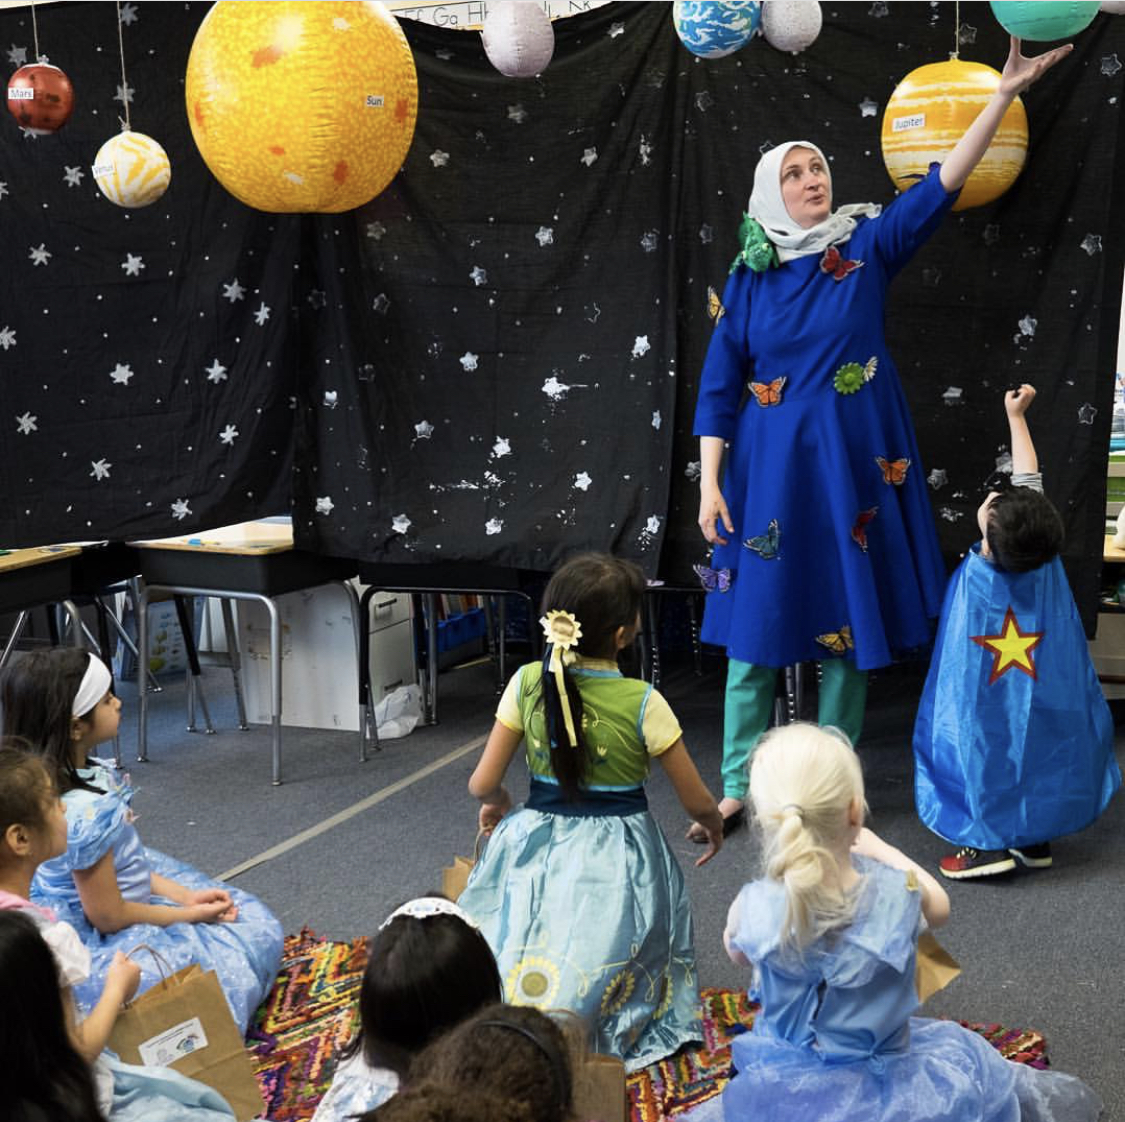 Third grade teacher Amy Tucker teaches kids about planets during a school event celebrating reading and literature at Al Fatih Academy in Reston, VA. Pic courtesy: Zoshia Minto.